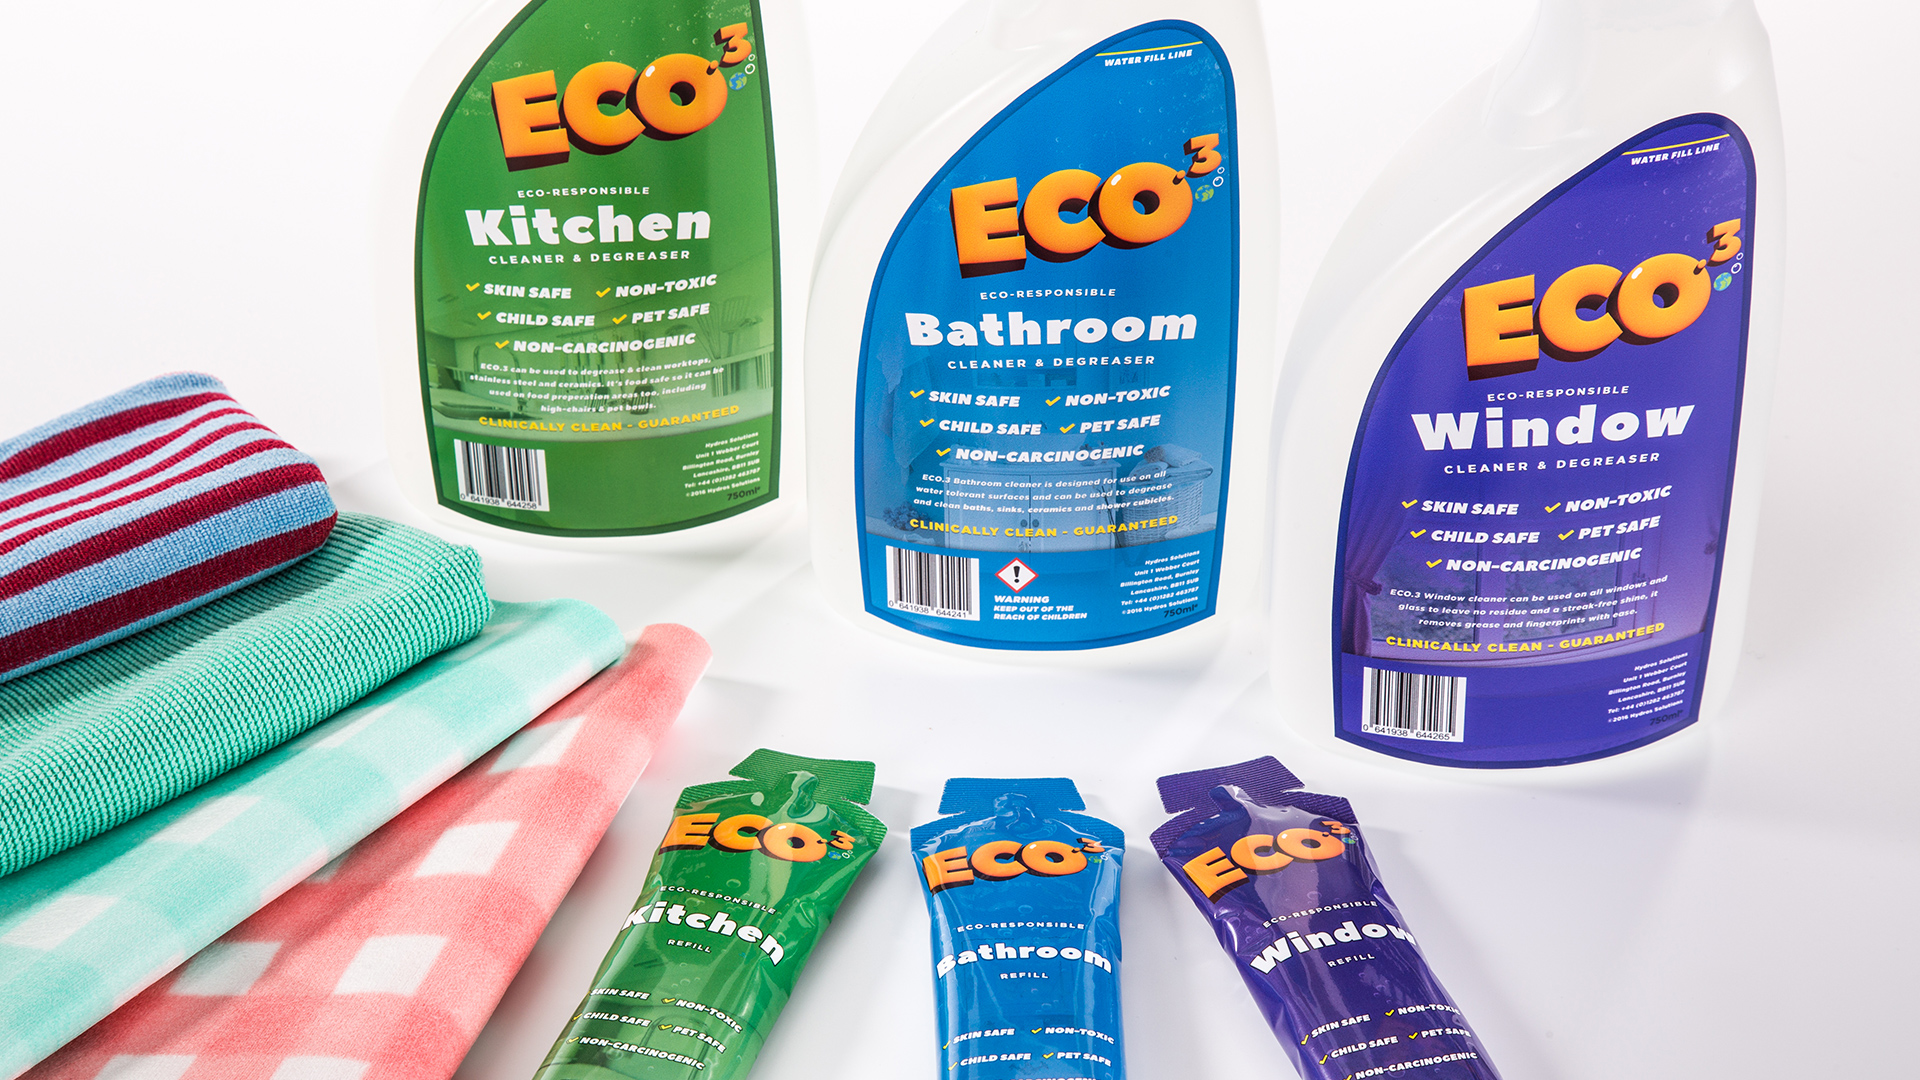 Environmentally Safe Cleaning Products, Eco friendly cleaners, eco-friendly cleaning